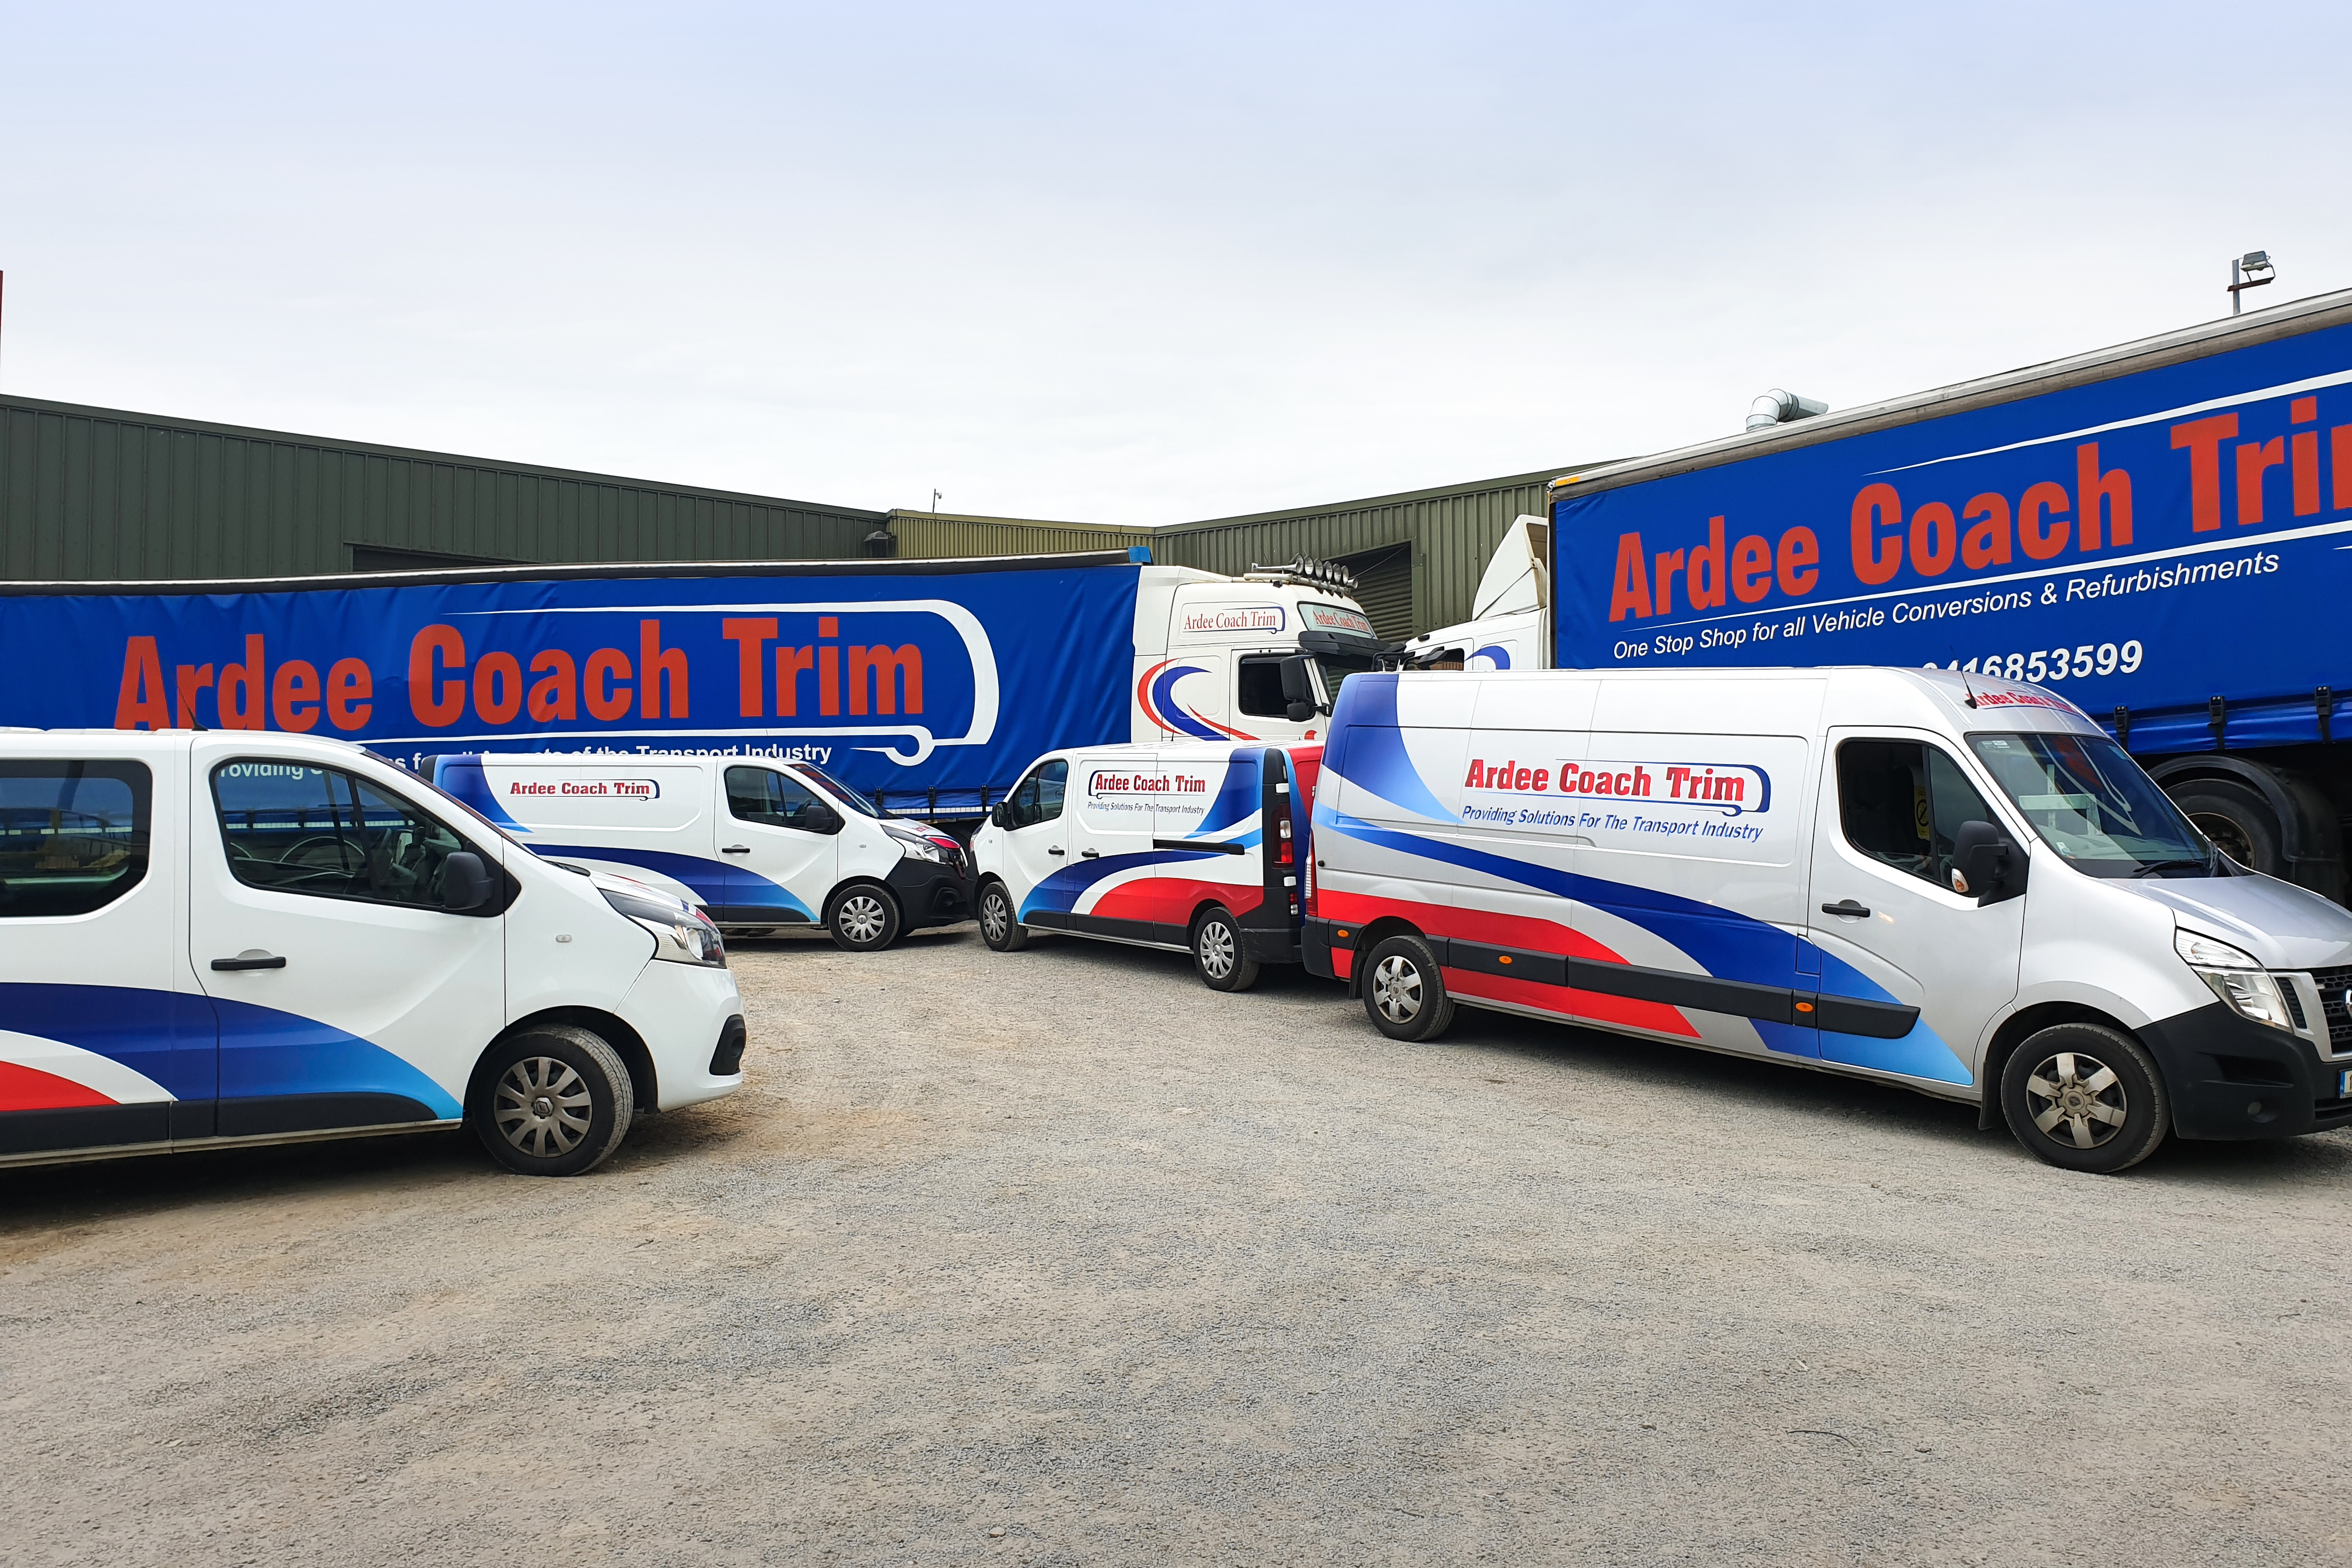 ADL appoints Ardee in exclusive partnership